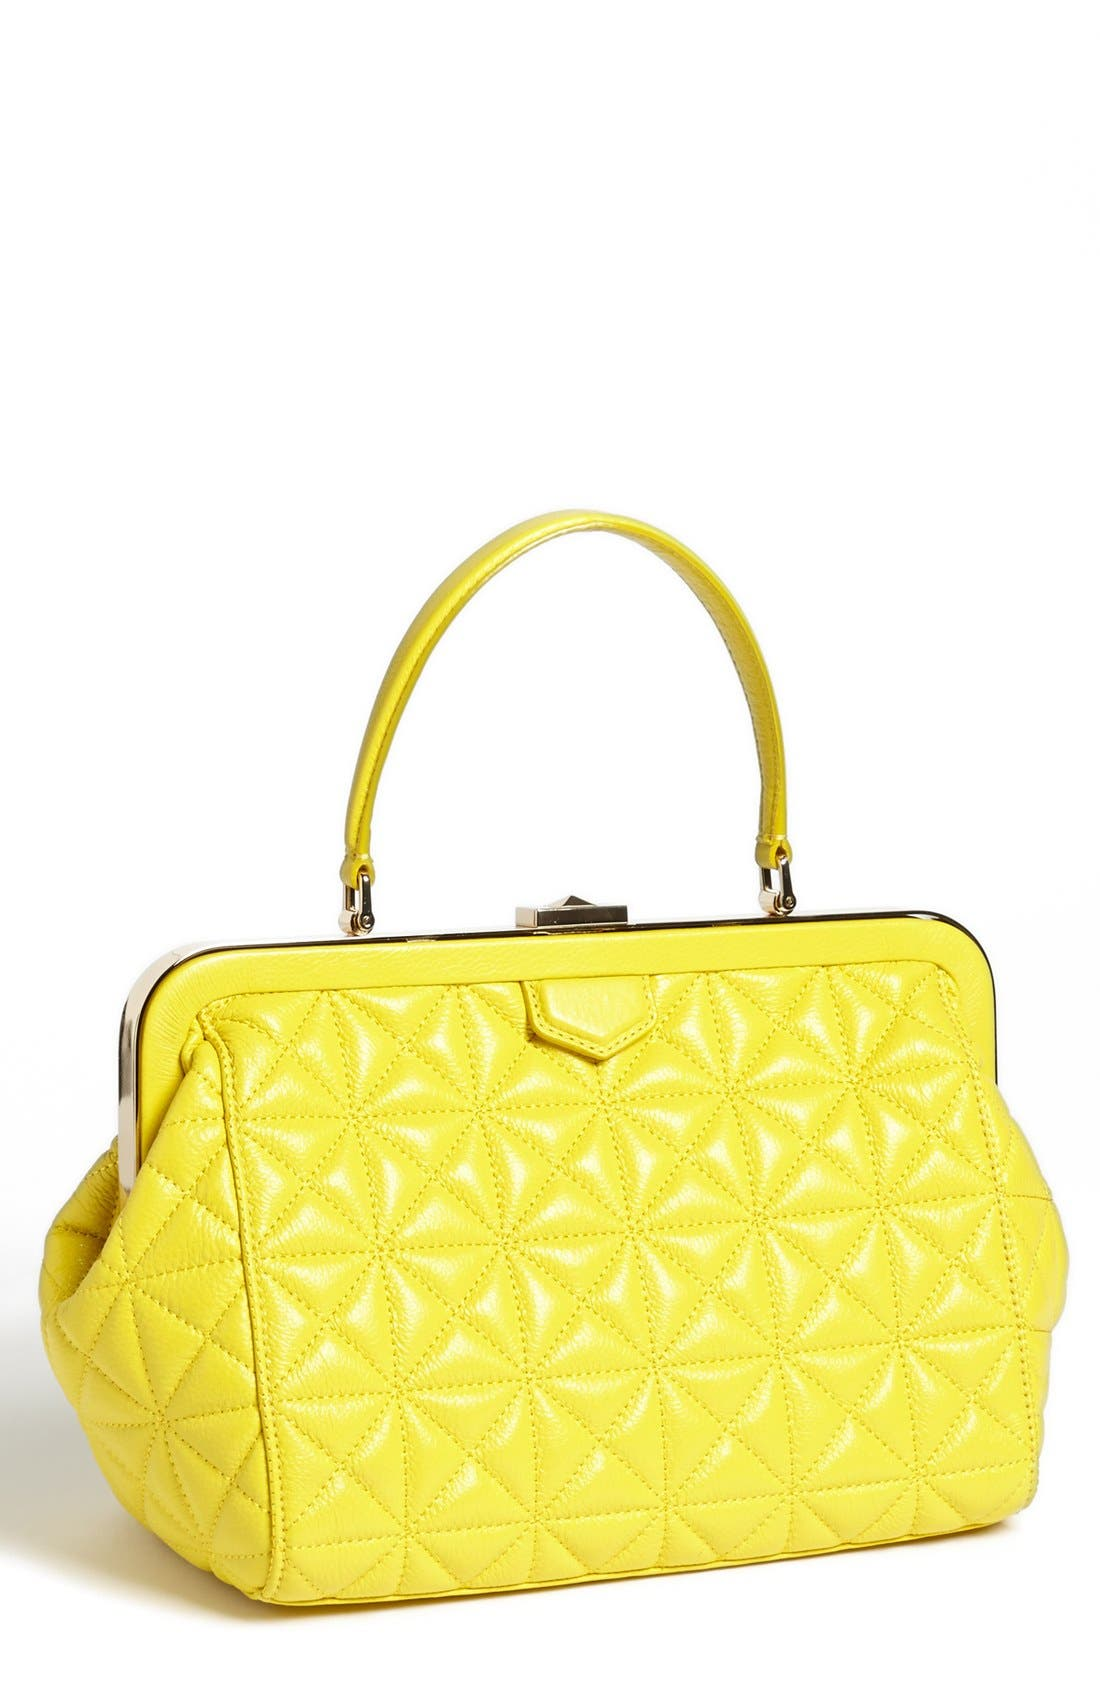 Alternate Image 1 Selected - kate spade new york 'sedgwick place -emilia' handbag